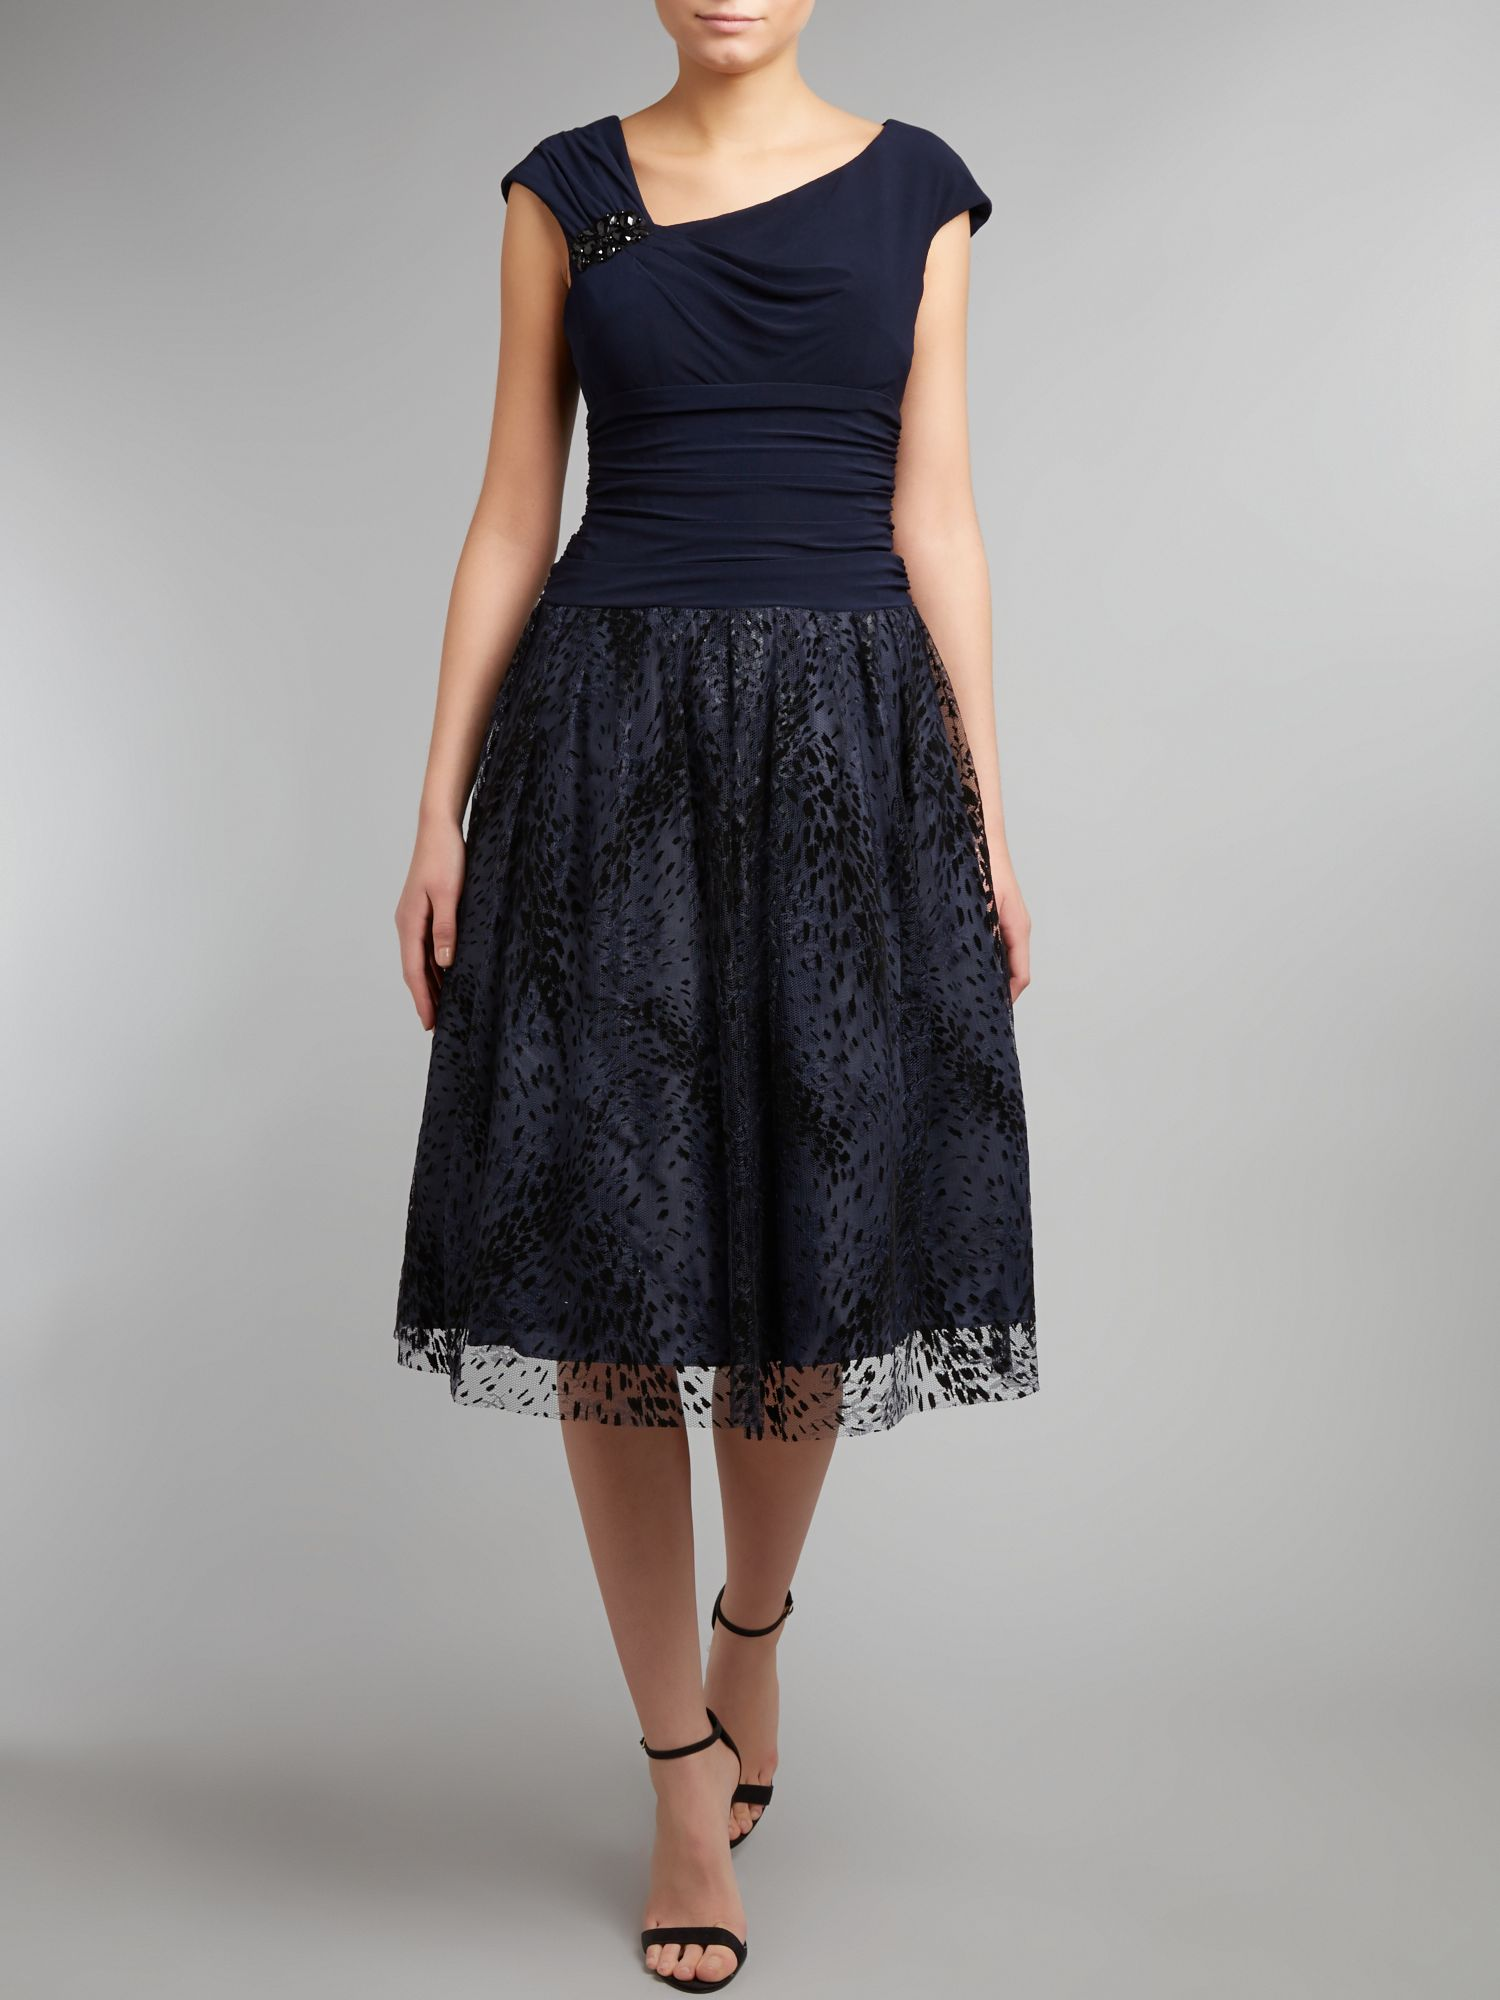 Burnout lace skirt dress